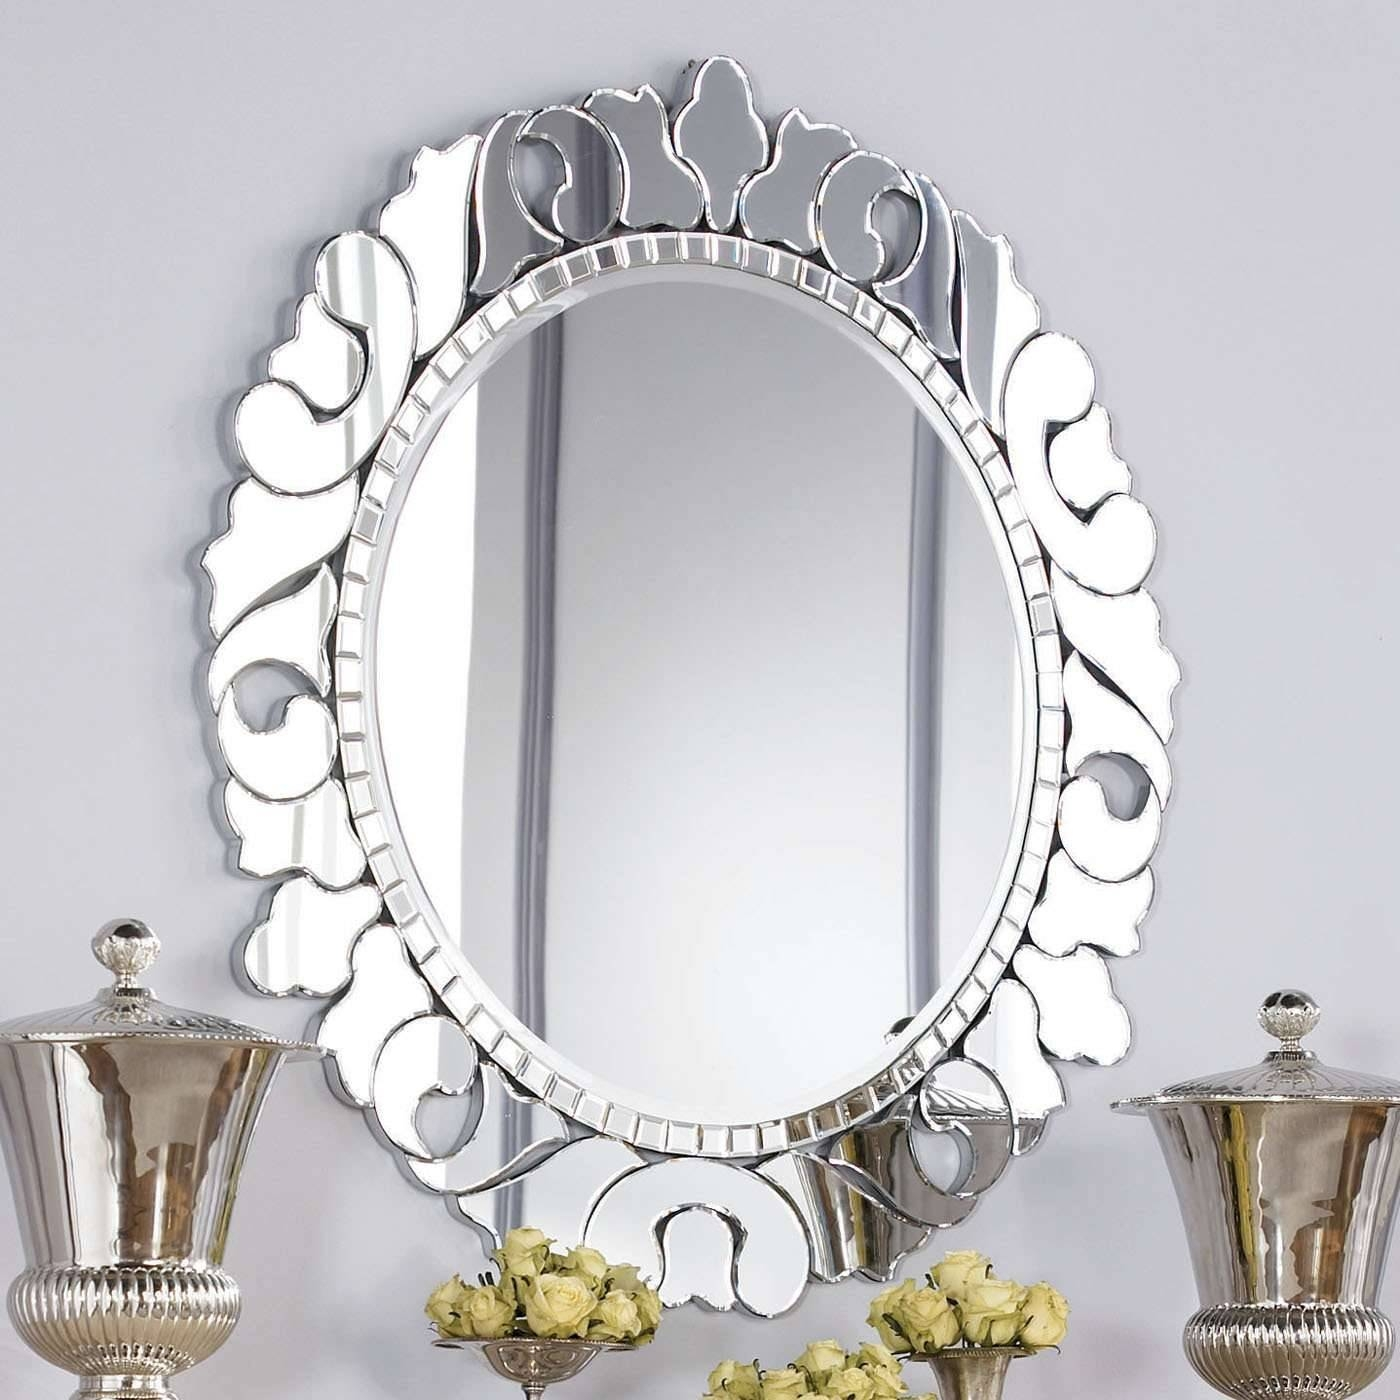 Venetian Wall Mirror Antique Venetian Mirror Furniture Mirror regarding Venetian Style Wall Mirrors (Image 21 of 25)